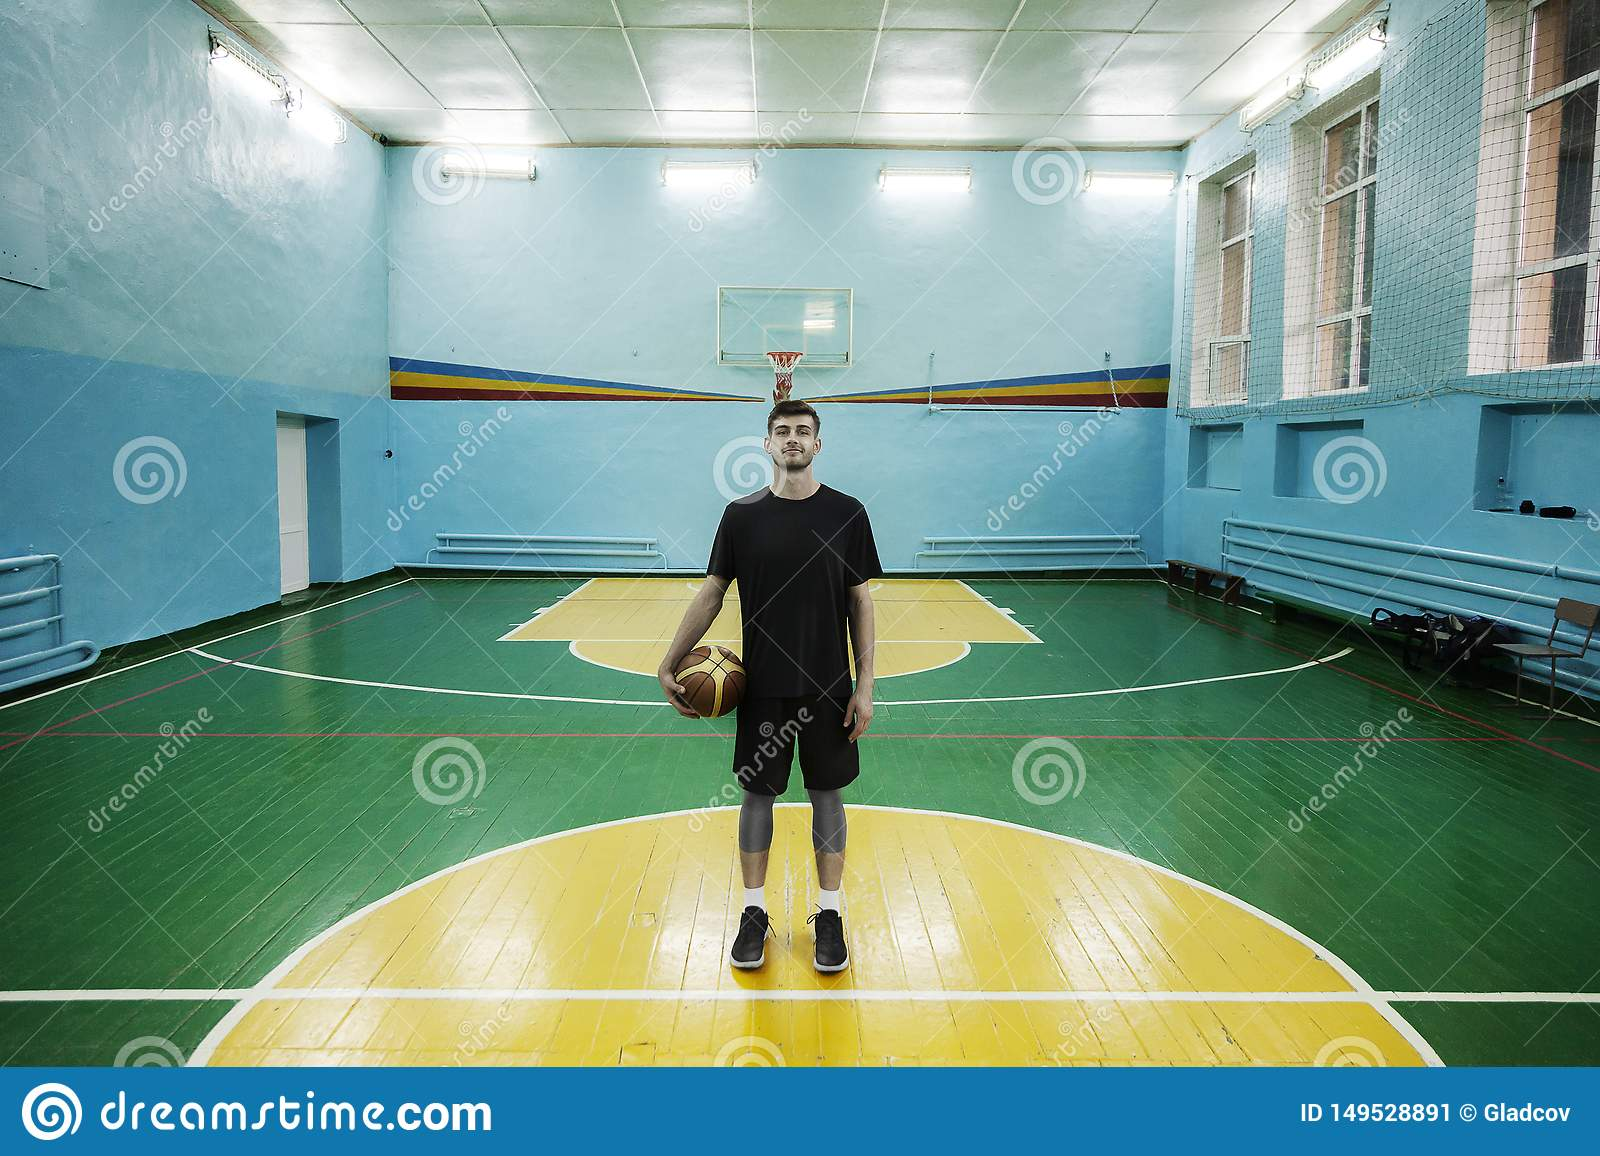 Basketball player in action in a basketball court